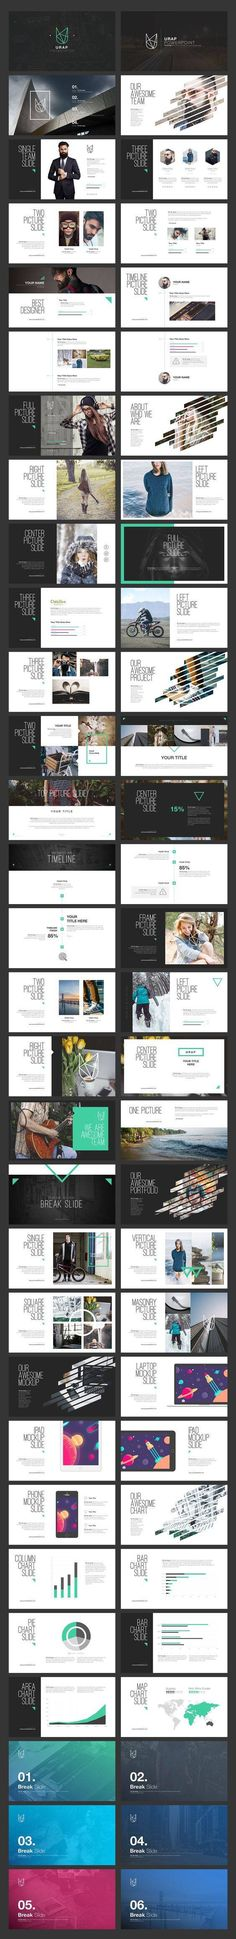 Liberty PowerPoint Presentation (PowerPoint Templates) - powerpoint presentations template